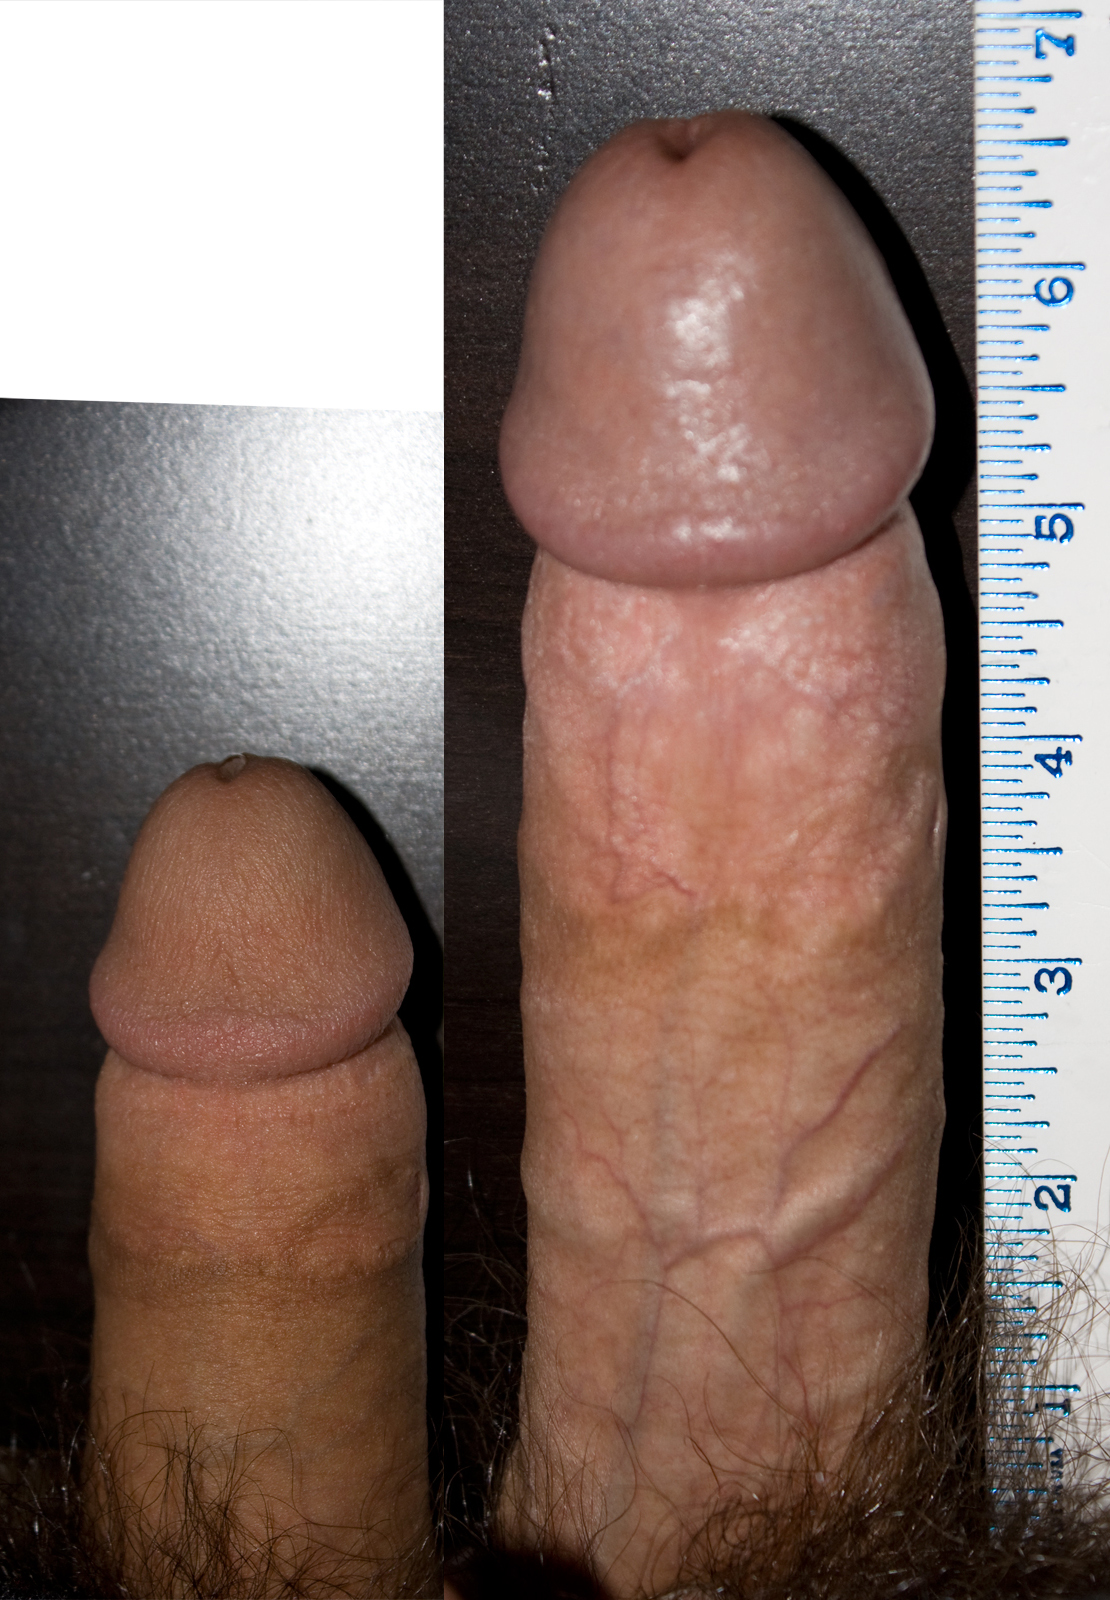 male size average penis erection